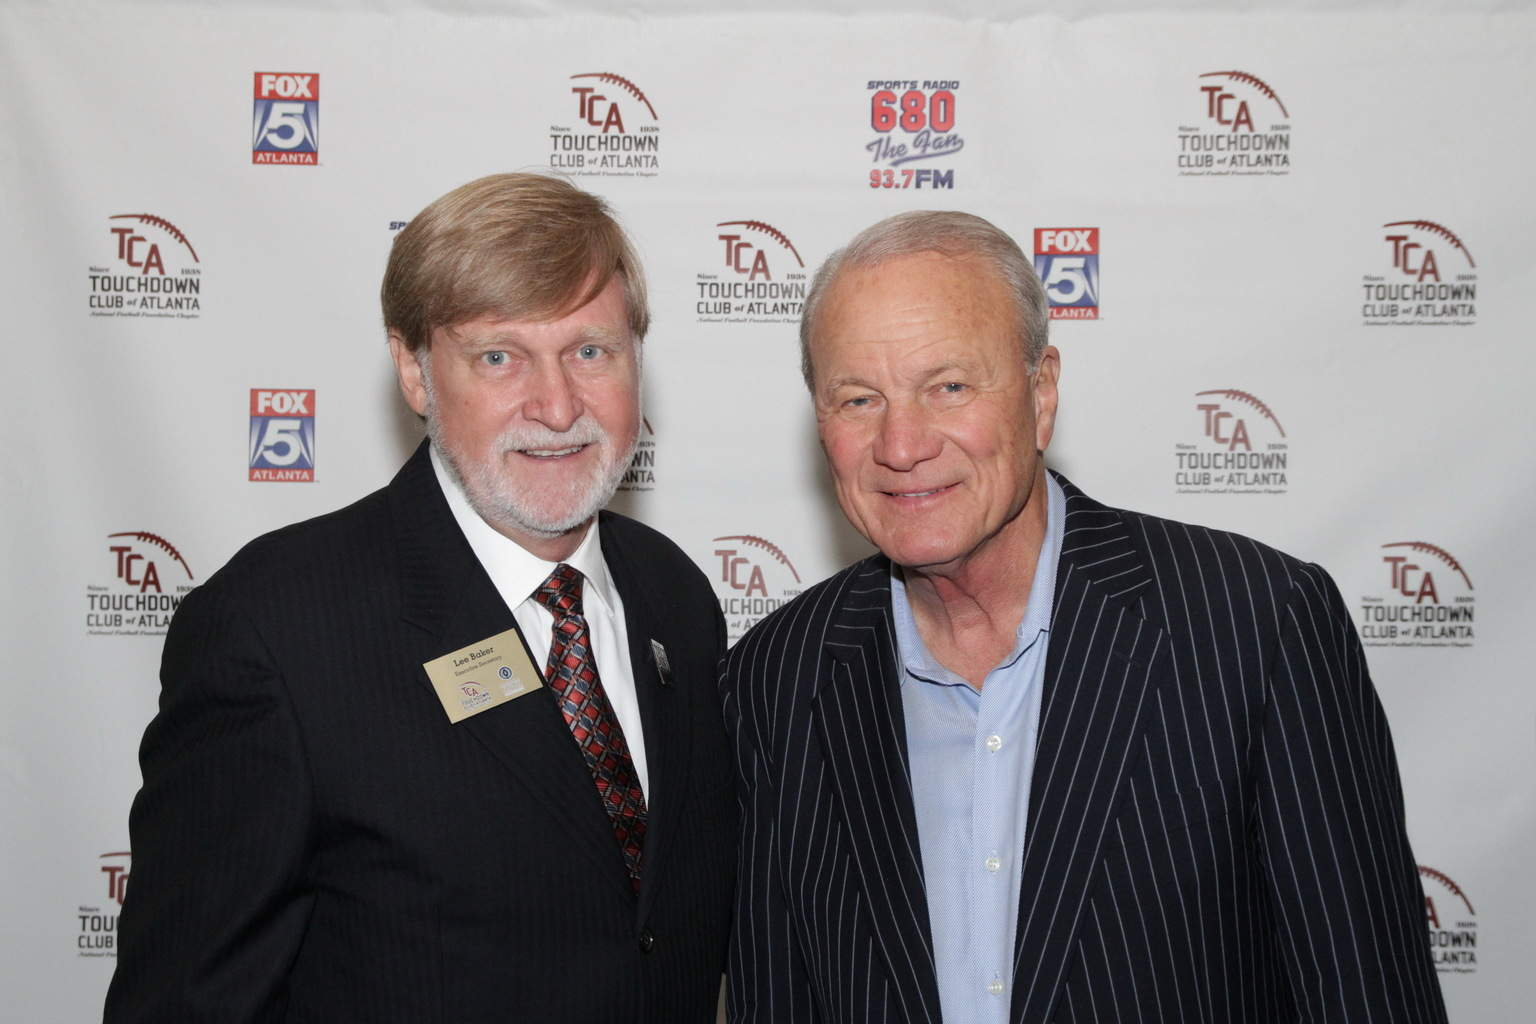 TCA's Lee Baker & Barry Switzer